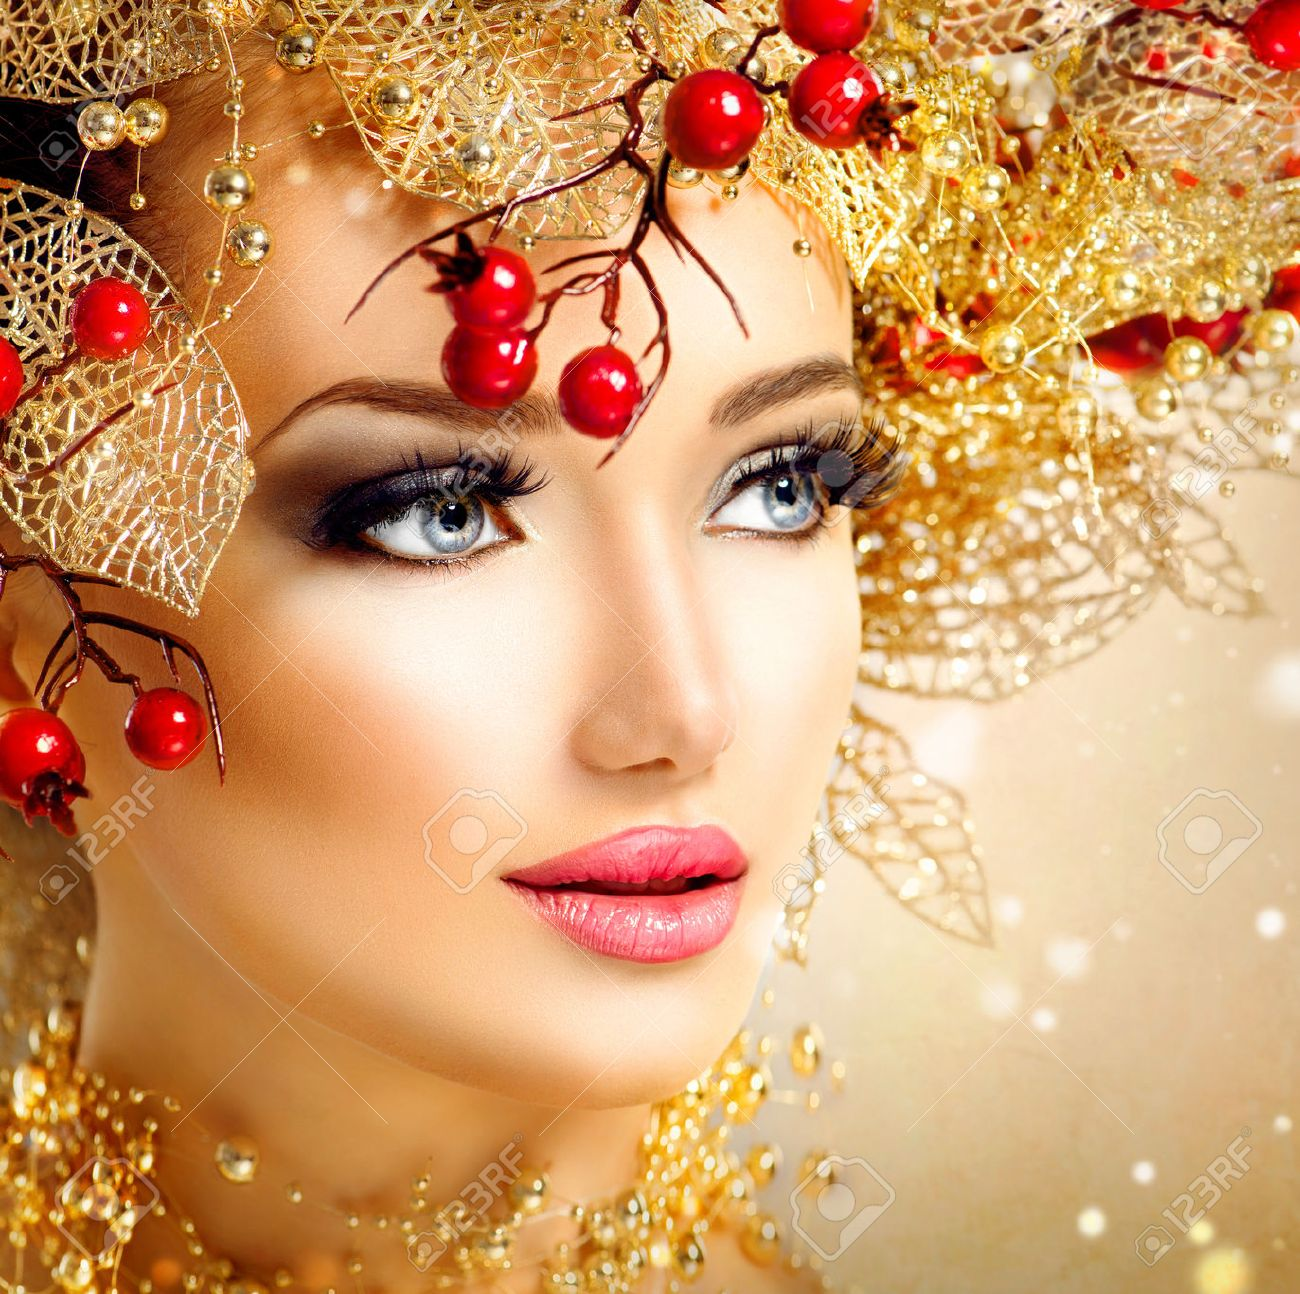 Christmas Fashion Model Girl With Golden Hairstyle And Makeup Stock Photo Picture And Royalty Free Image Image 33708772